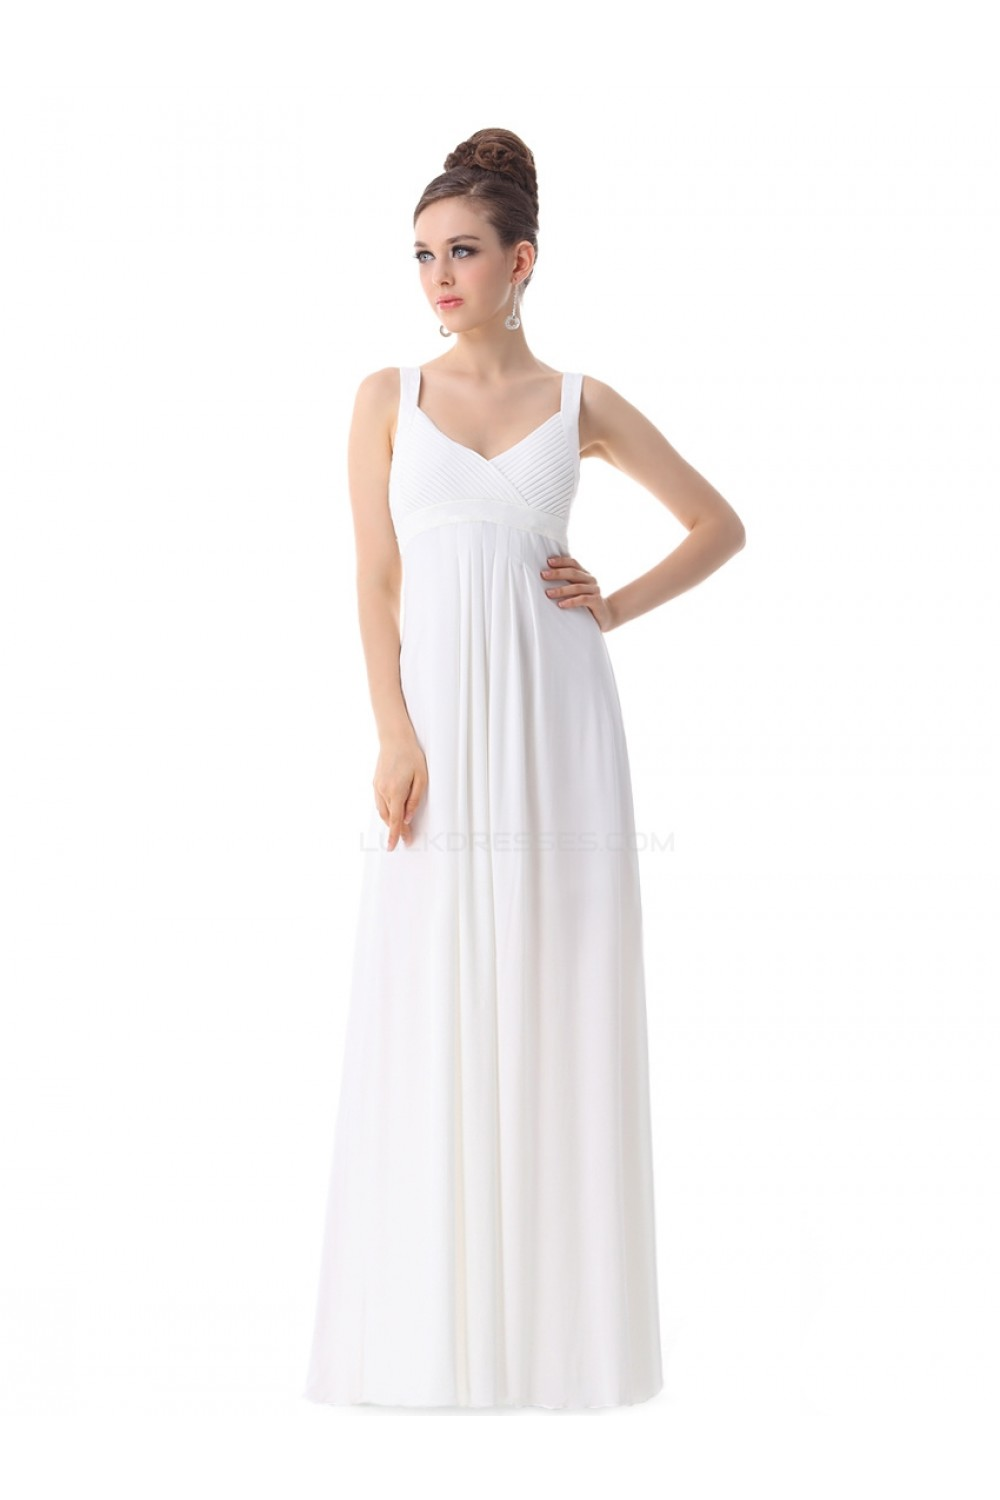 Empire Long White Chiffon Bridesmaid Dresses/Wedding Party Dresses ...